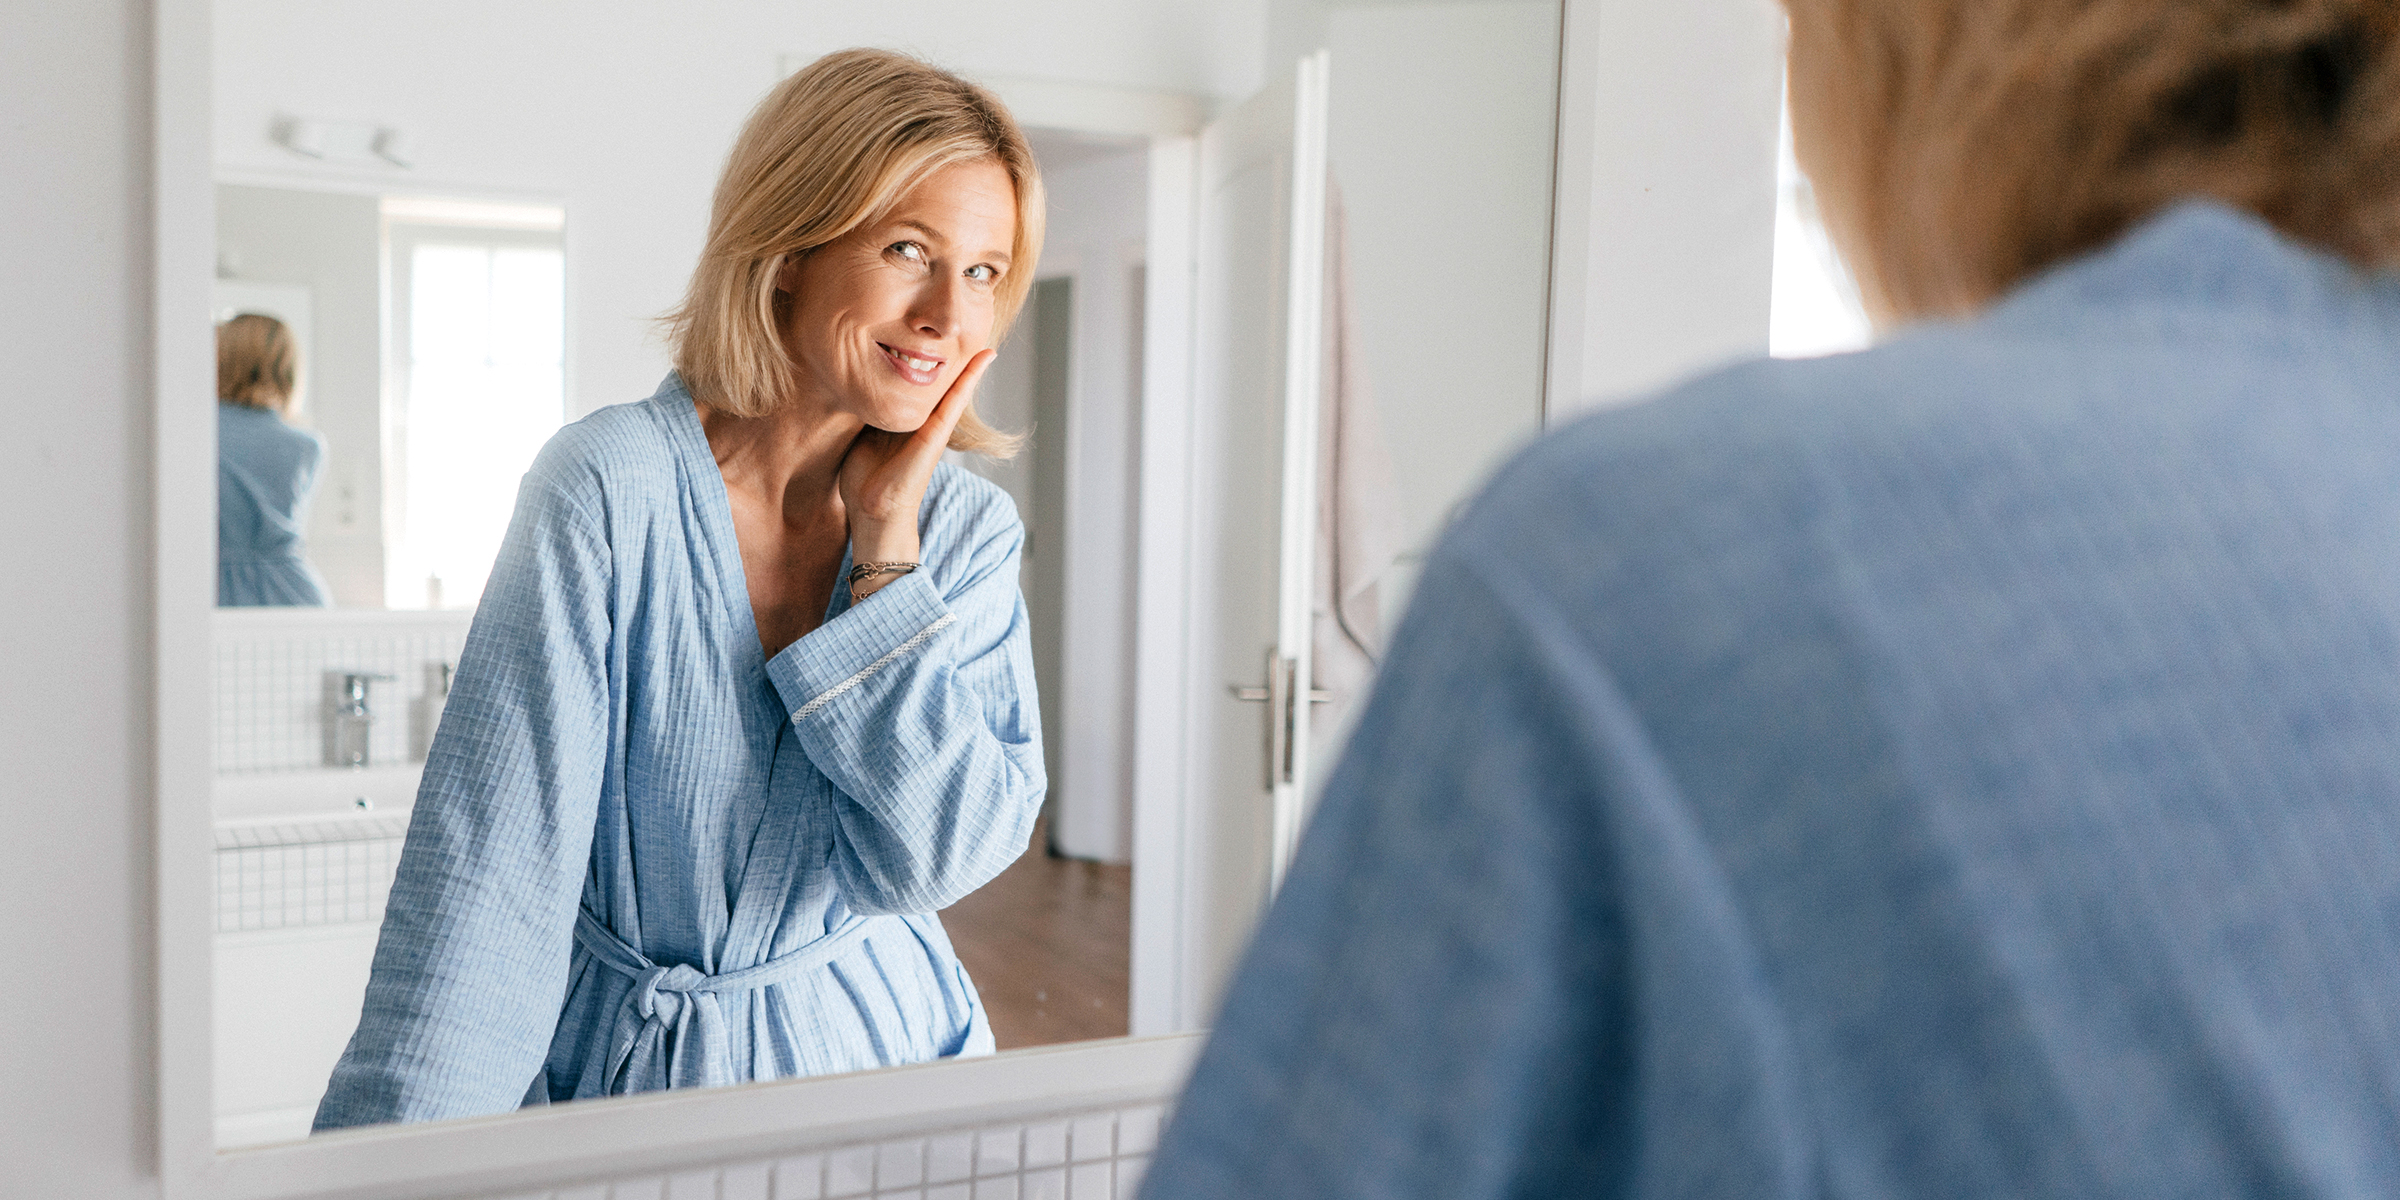 The Best Anti Aging Skin Care Products To Use In Your 40s